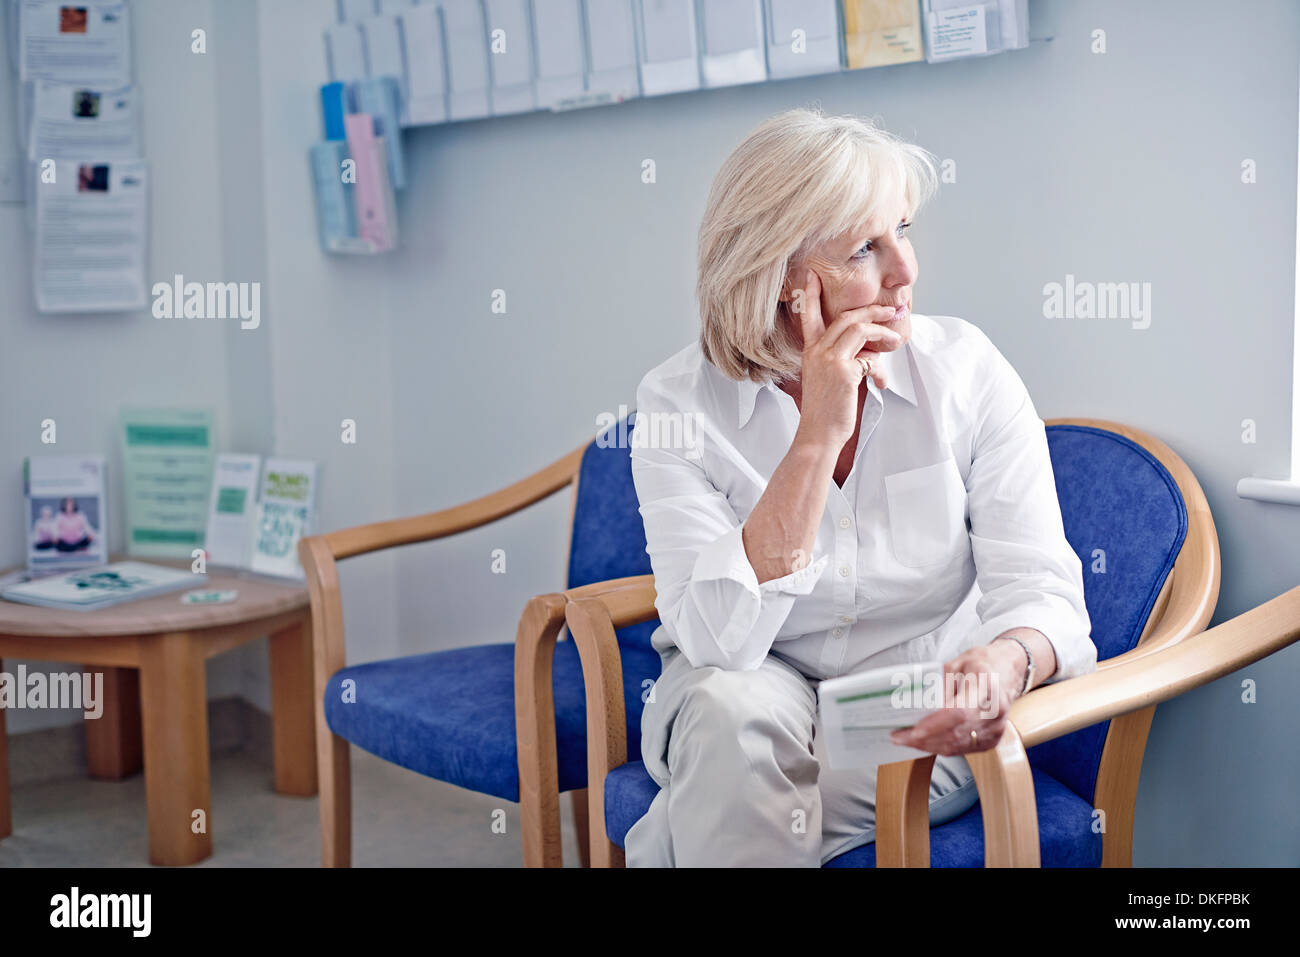 Mature female patient in hospital waiting room - Stock Image